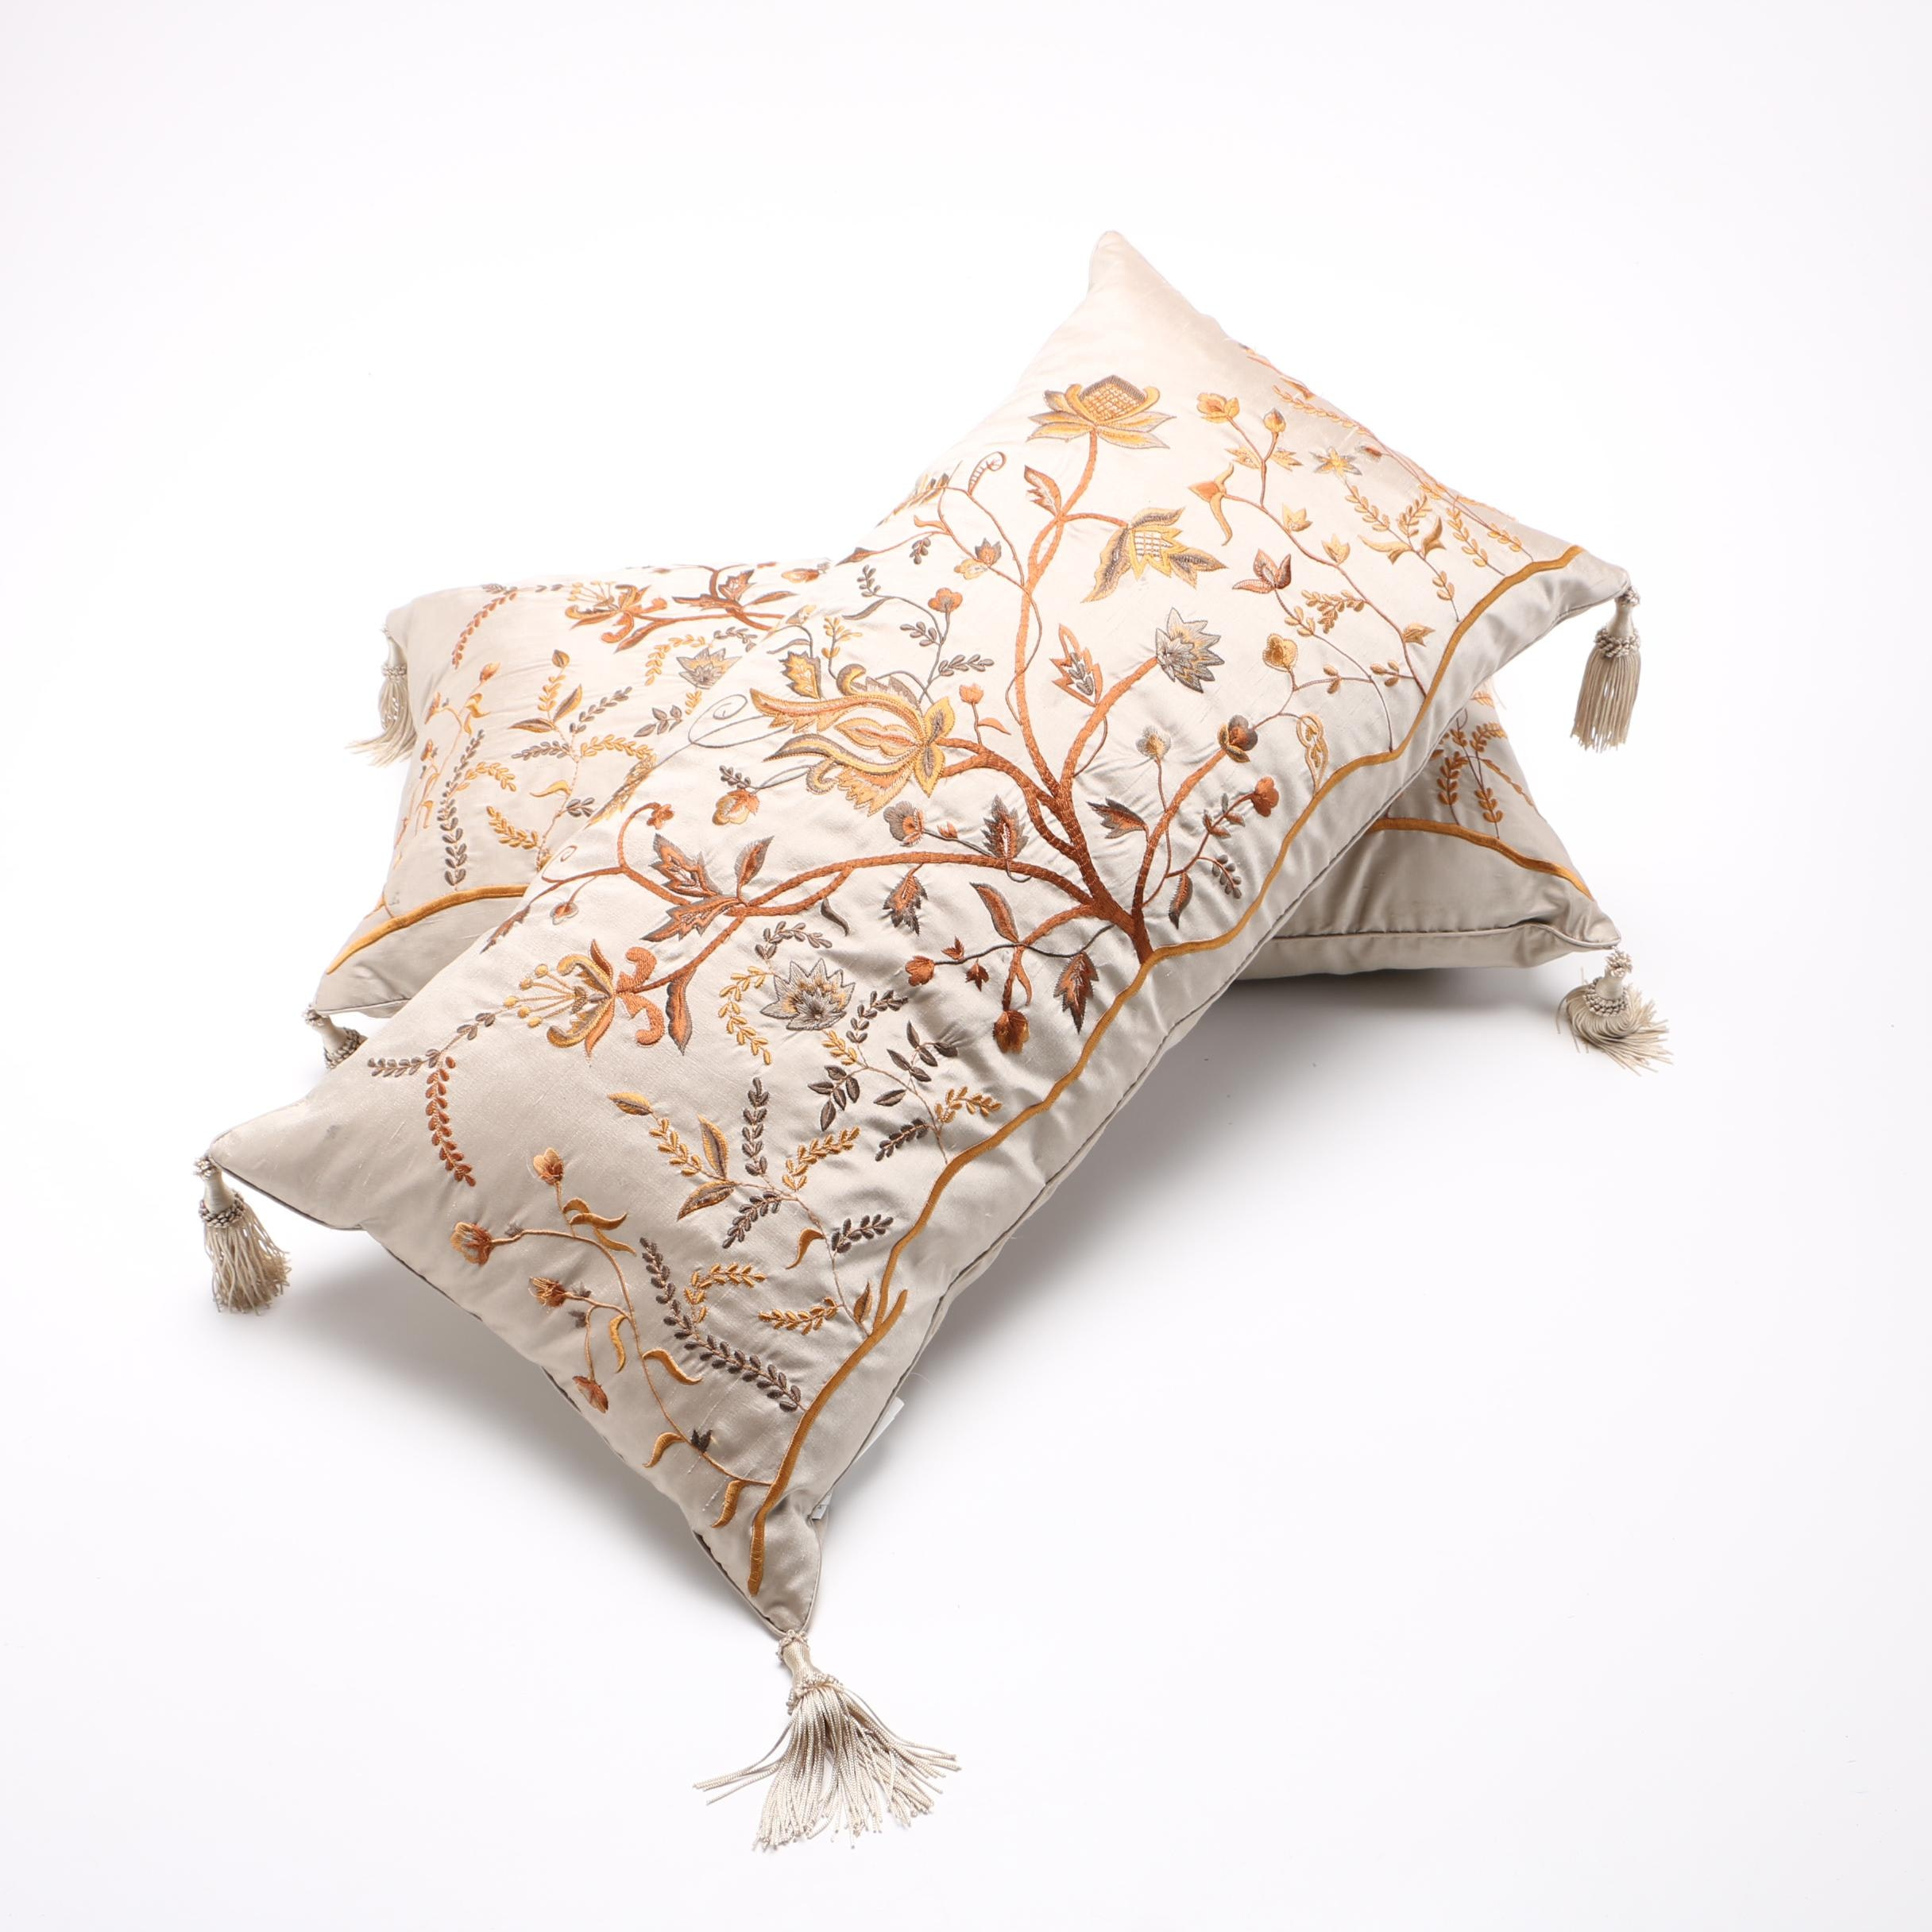 Embroidered Silk and Downfilled Throw Pillows